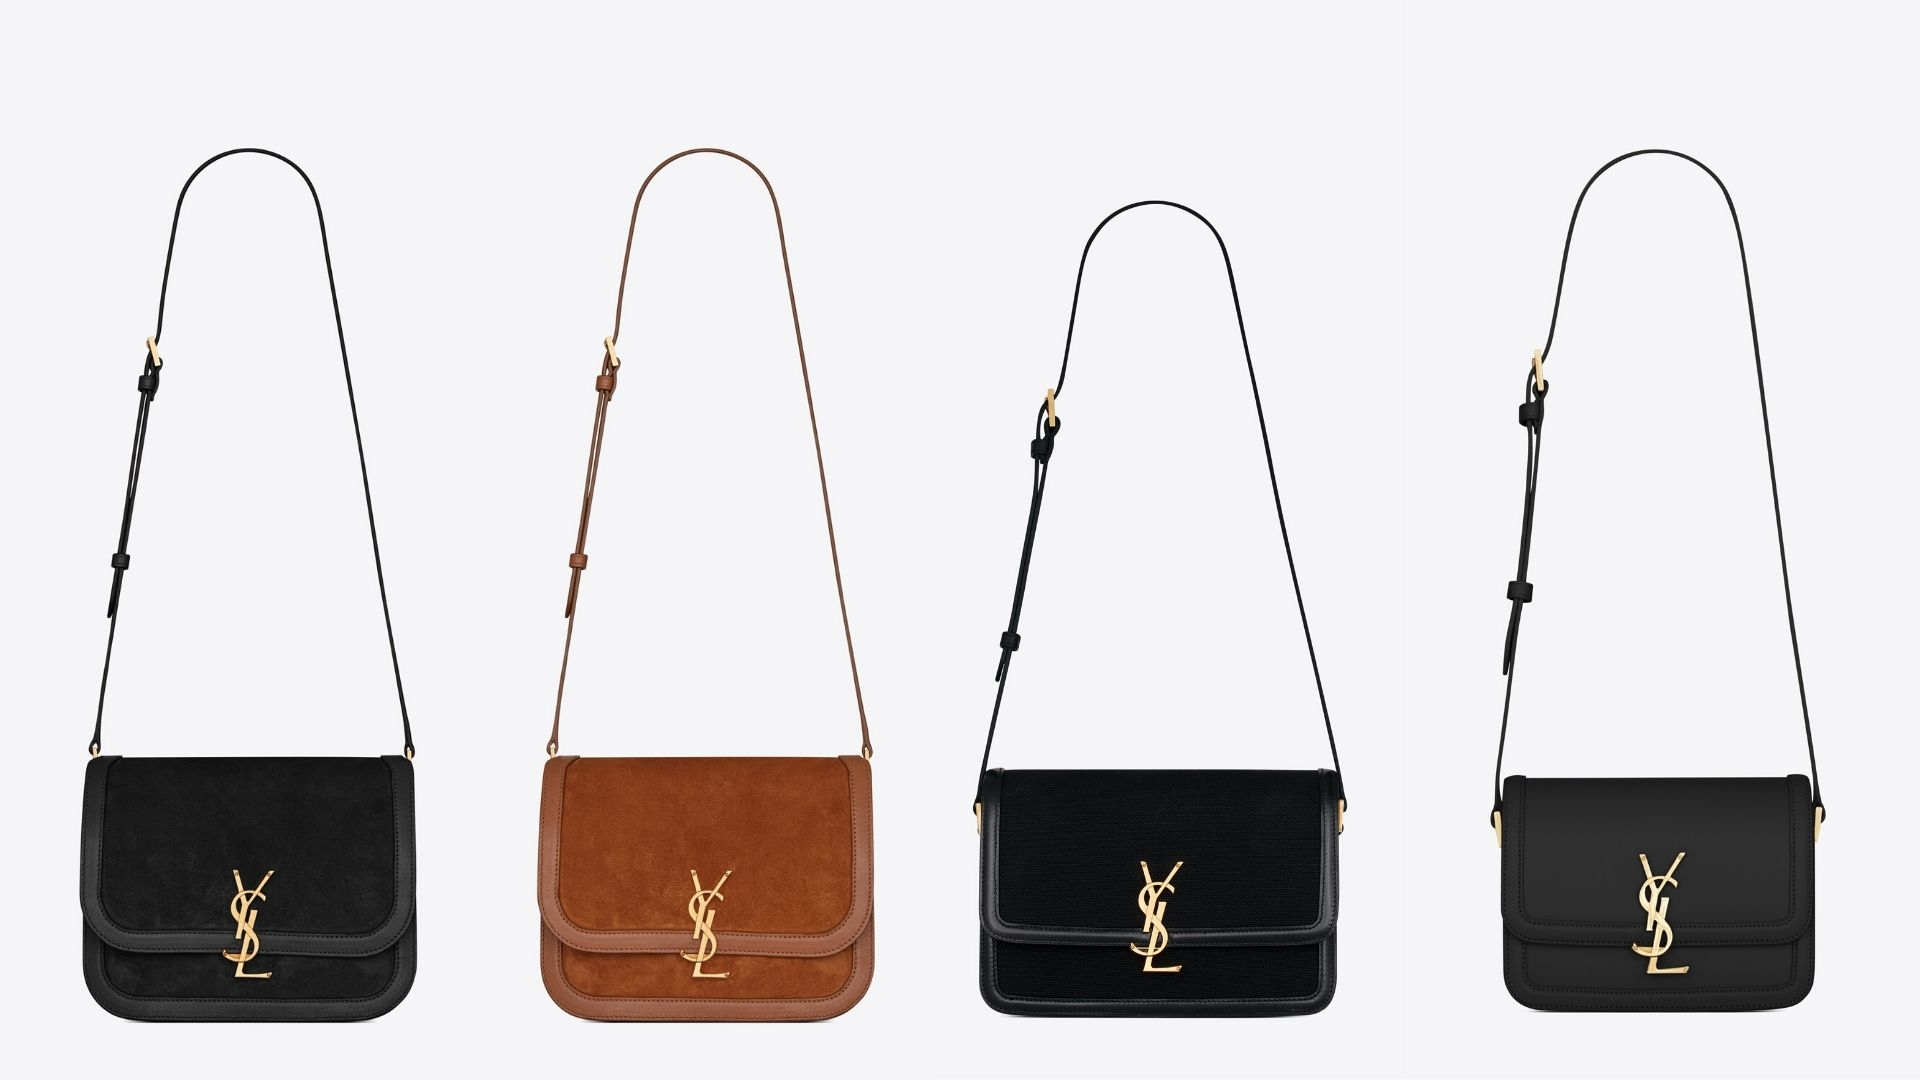 Why The Saint Laurent Solferino Is The Bag Of The Summer